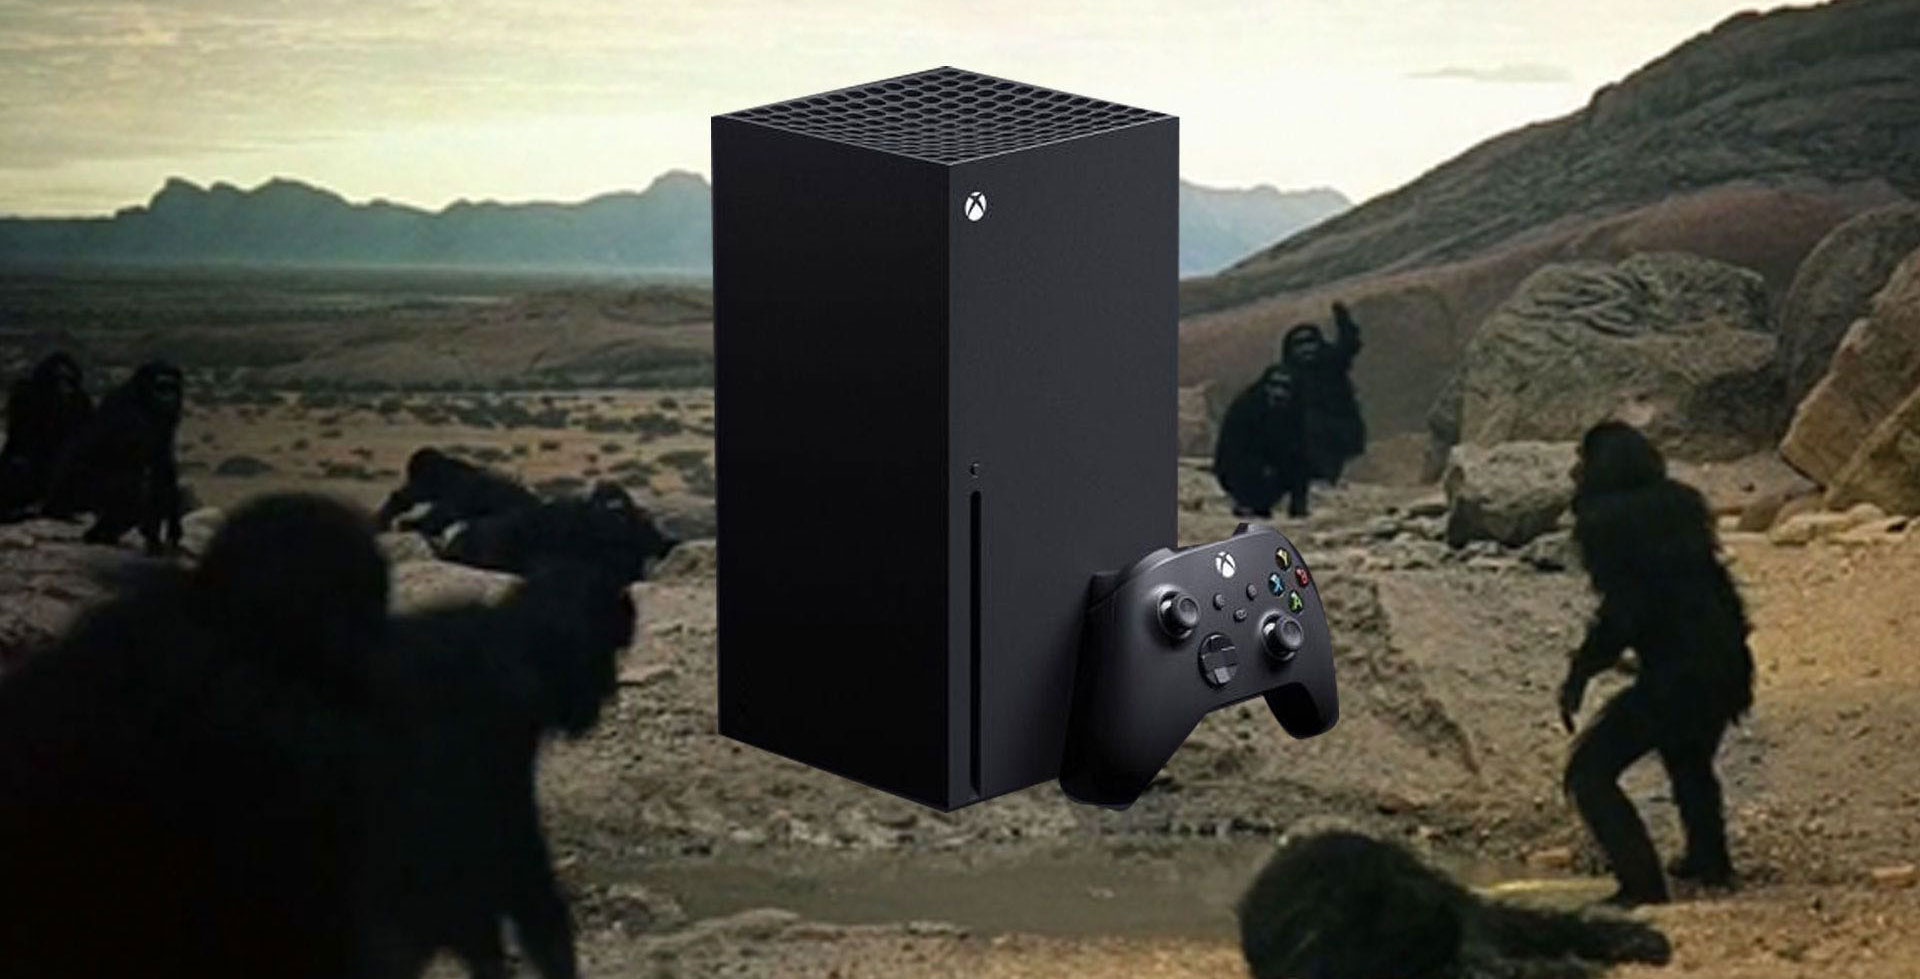 What Are Your Thoughts On The Xbox Series X S Design